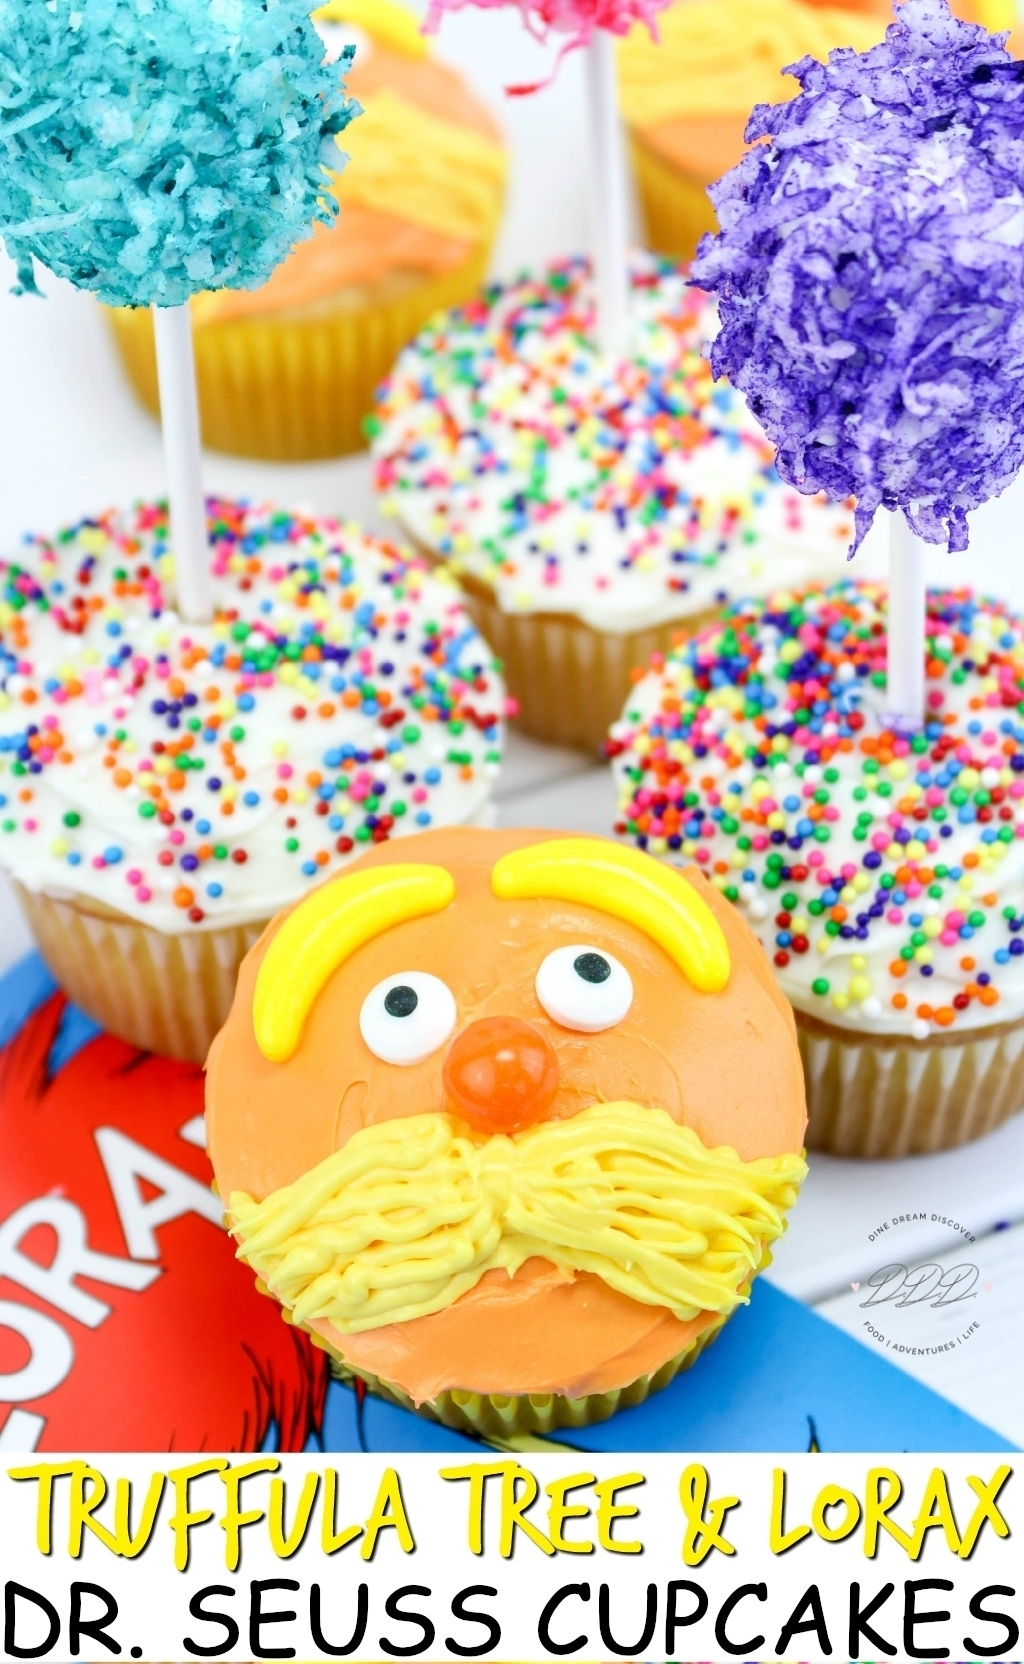 Today we are sharing our last Dr. Seuss recipe with the Truffula Tree and Lorax Cupcakes recipe in honor of his birthday.